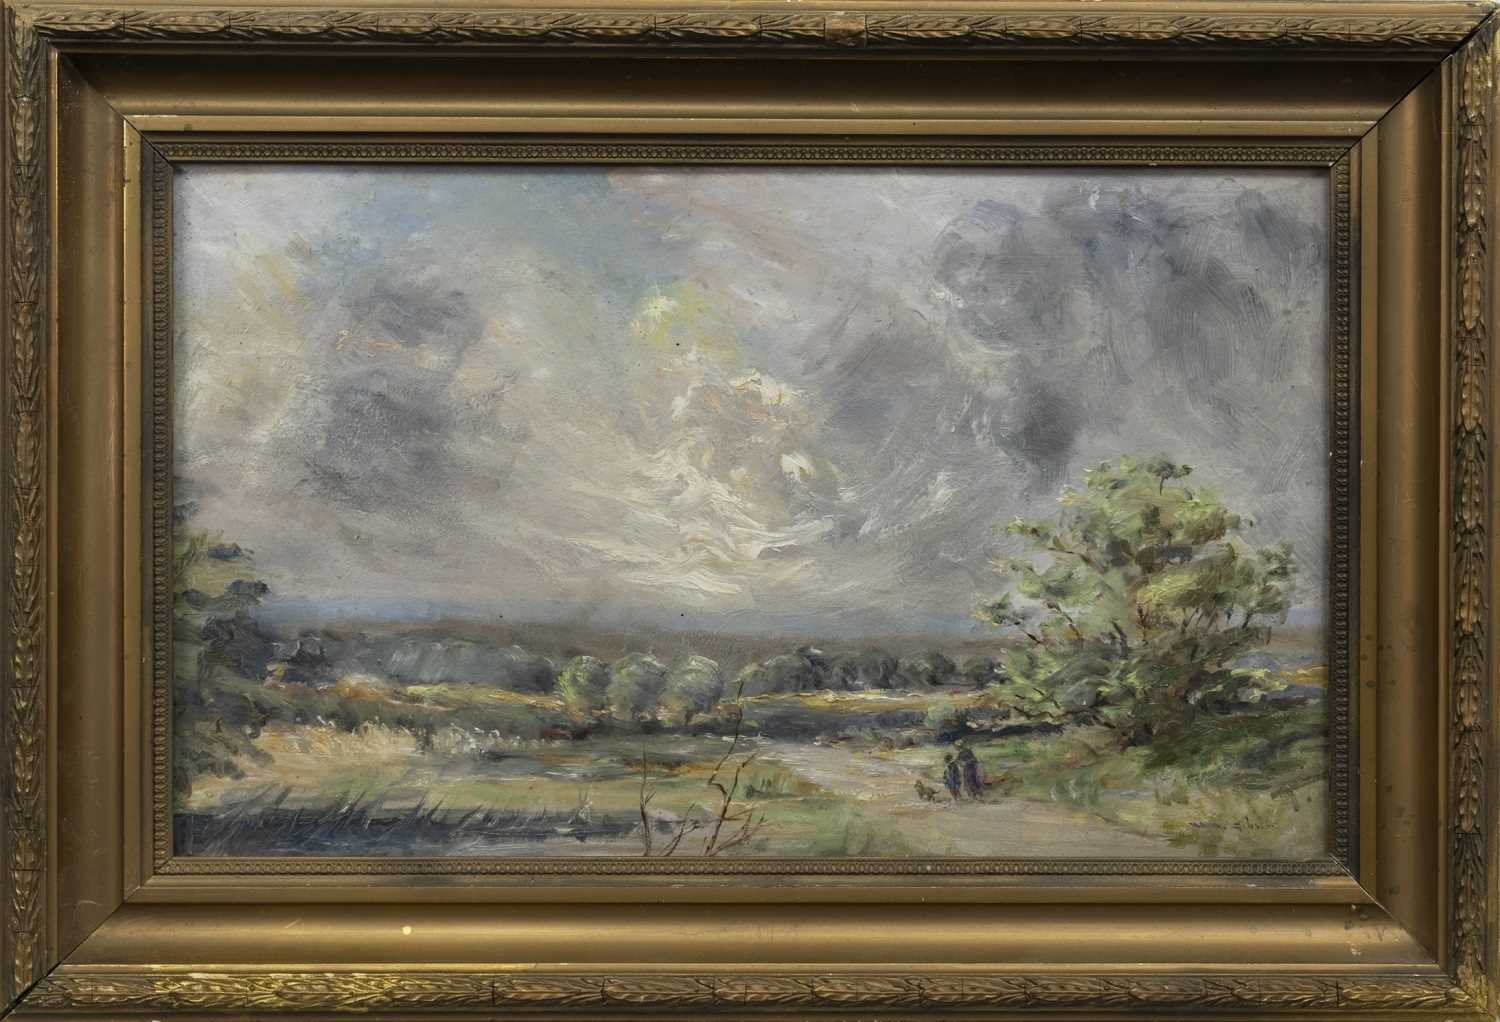 Lot 97 - FIGURES WITH A DOG ON A COUNTRY LANE, AN OIL BY WILLIAM ALFRED GIBSON